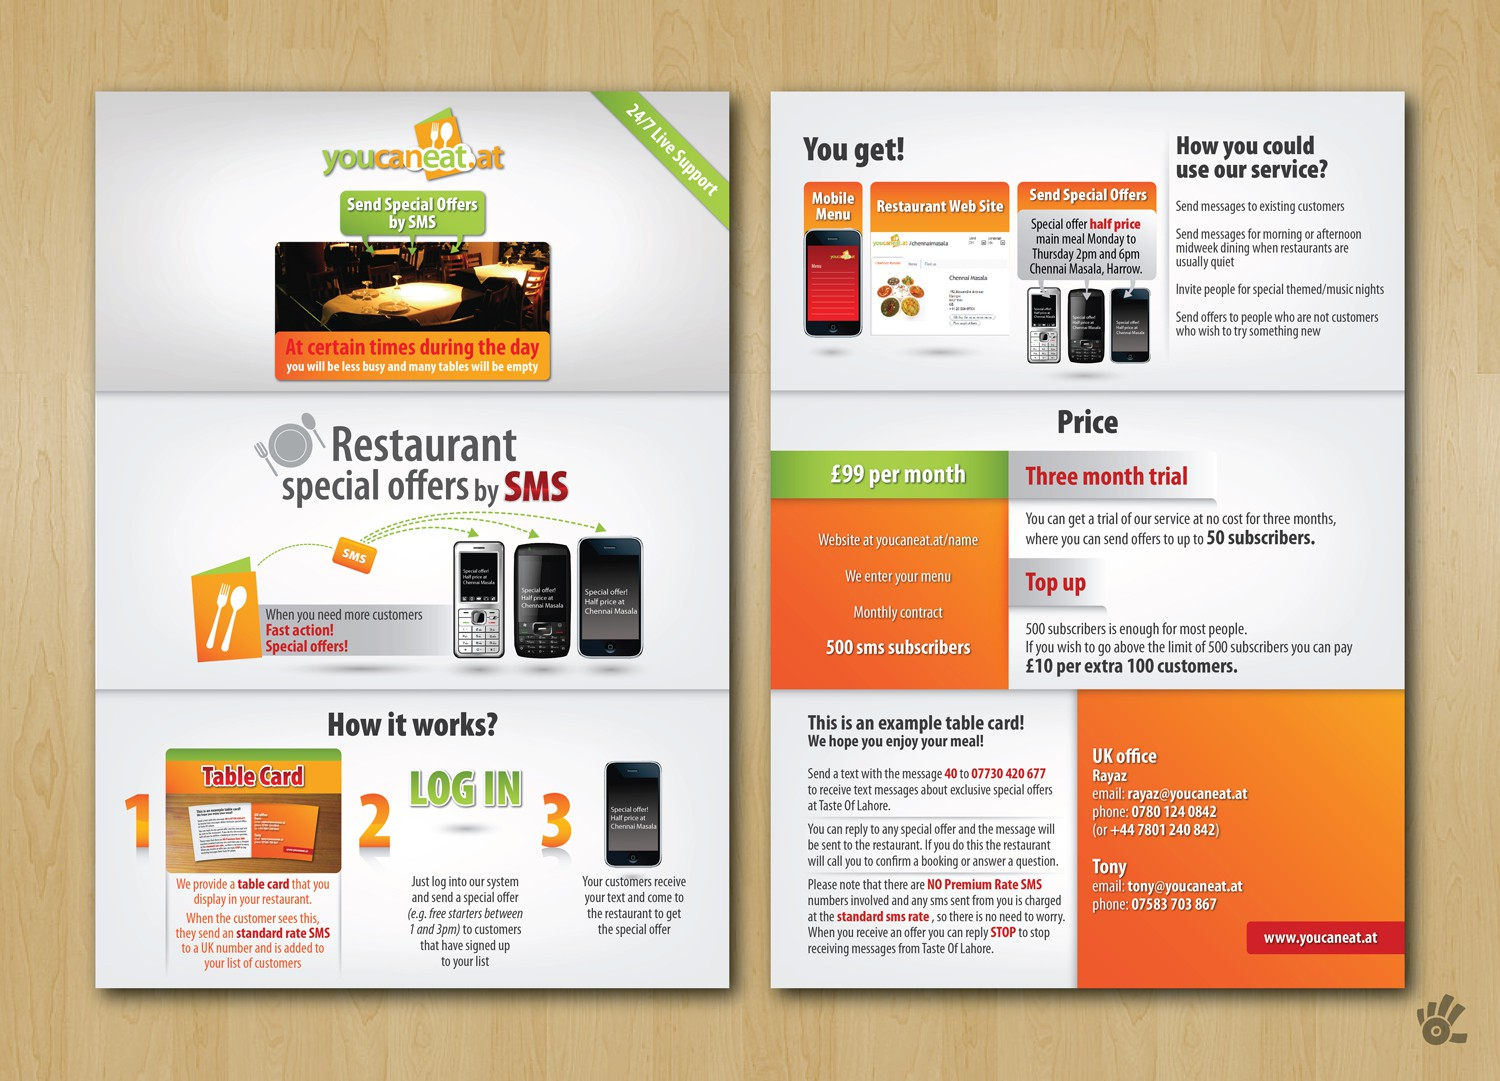 brochure design for youcaneat.at